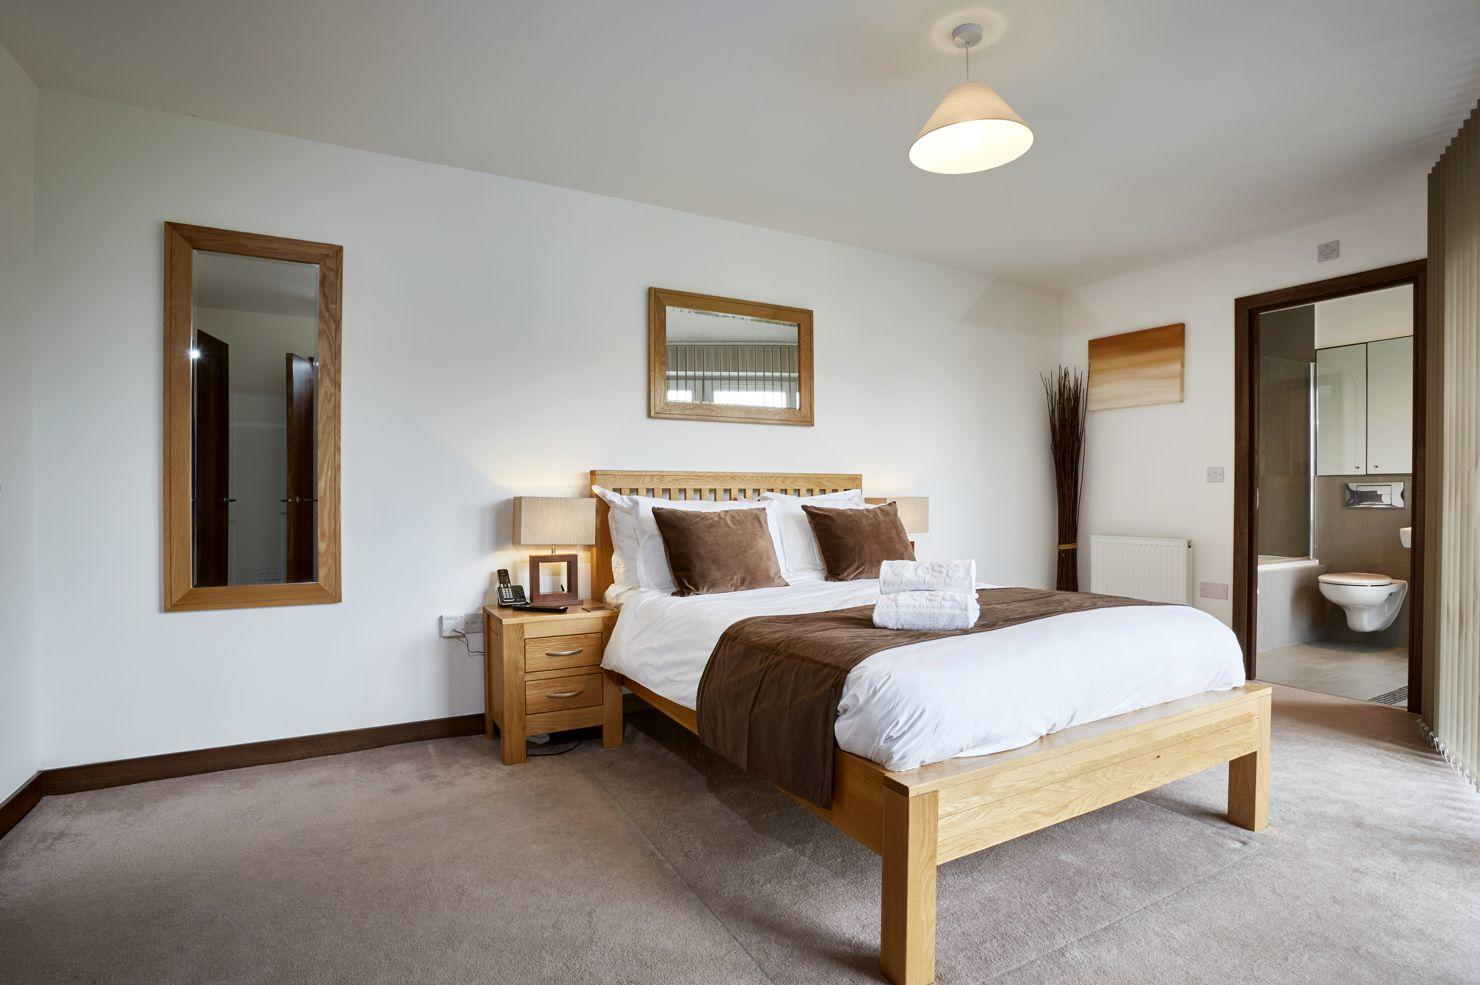 Serviced-Apartments-Uxbridge,-West-London---Kings-Island-Available-Now!-Book-Corporate-Serviced-Apartments-in-London!-Free-Wifi-and-Parking!